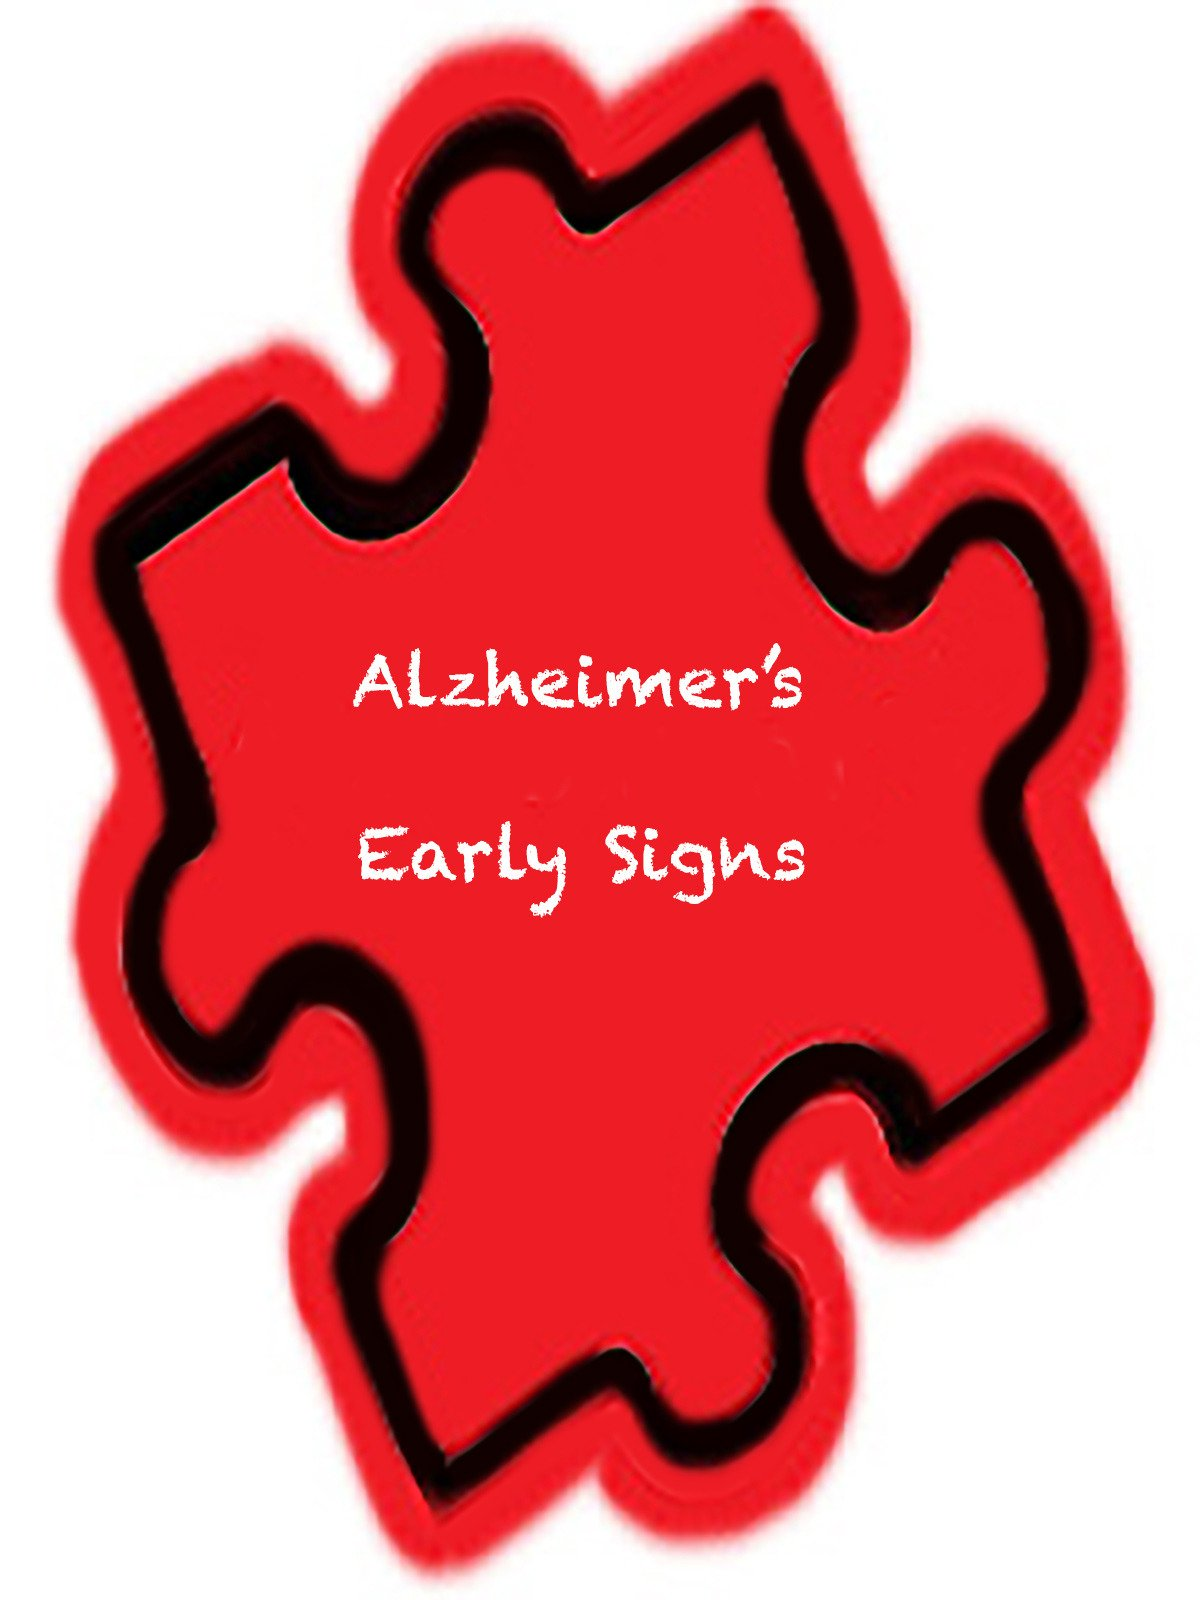 Alzheimer's Early Signs